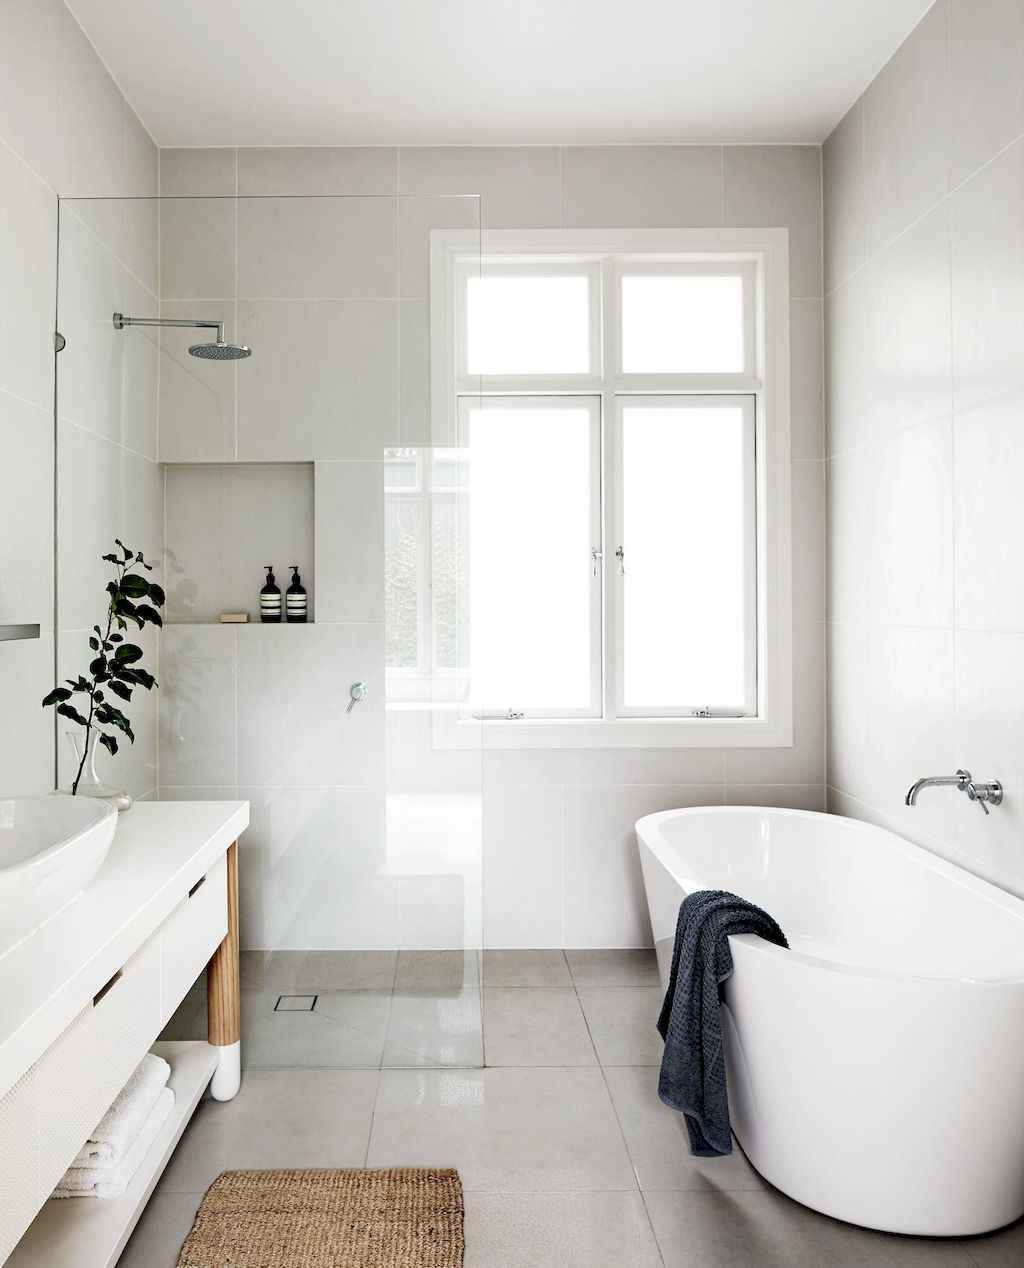 111 awesome small bathroom remodel ideas on a budget (83)